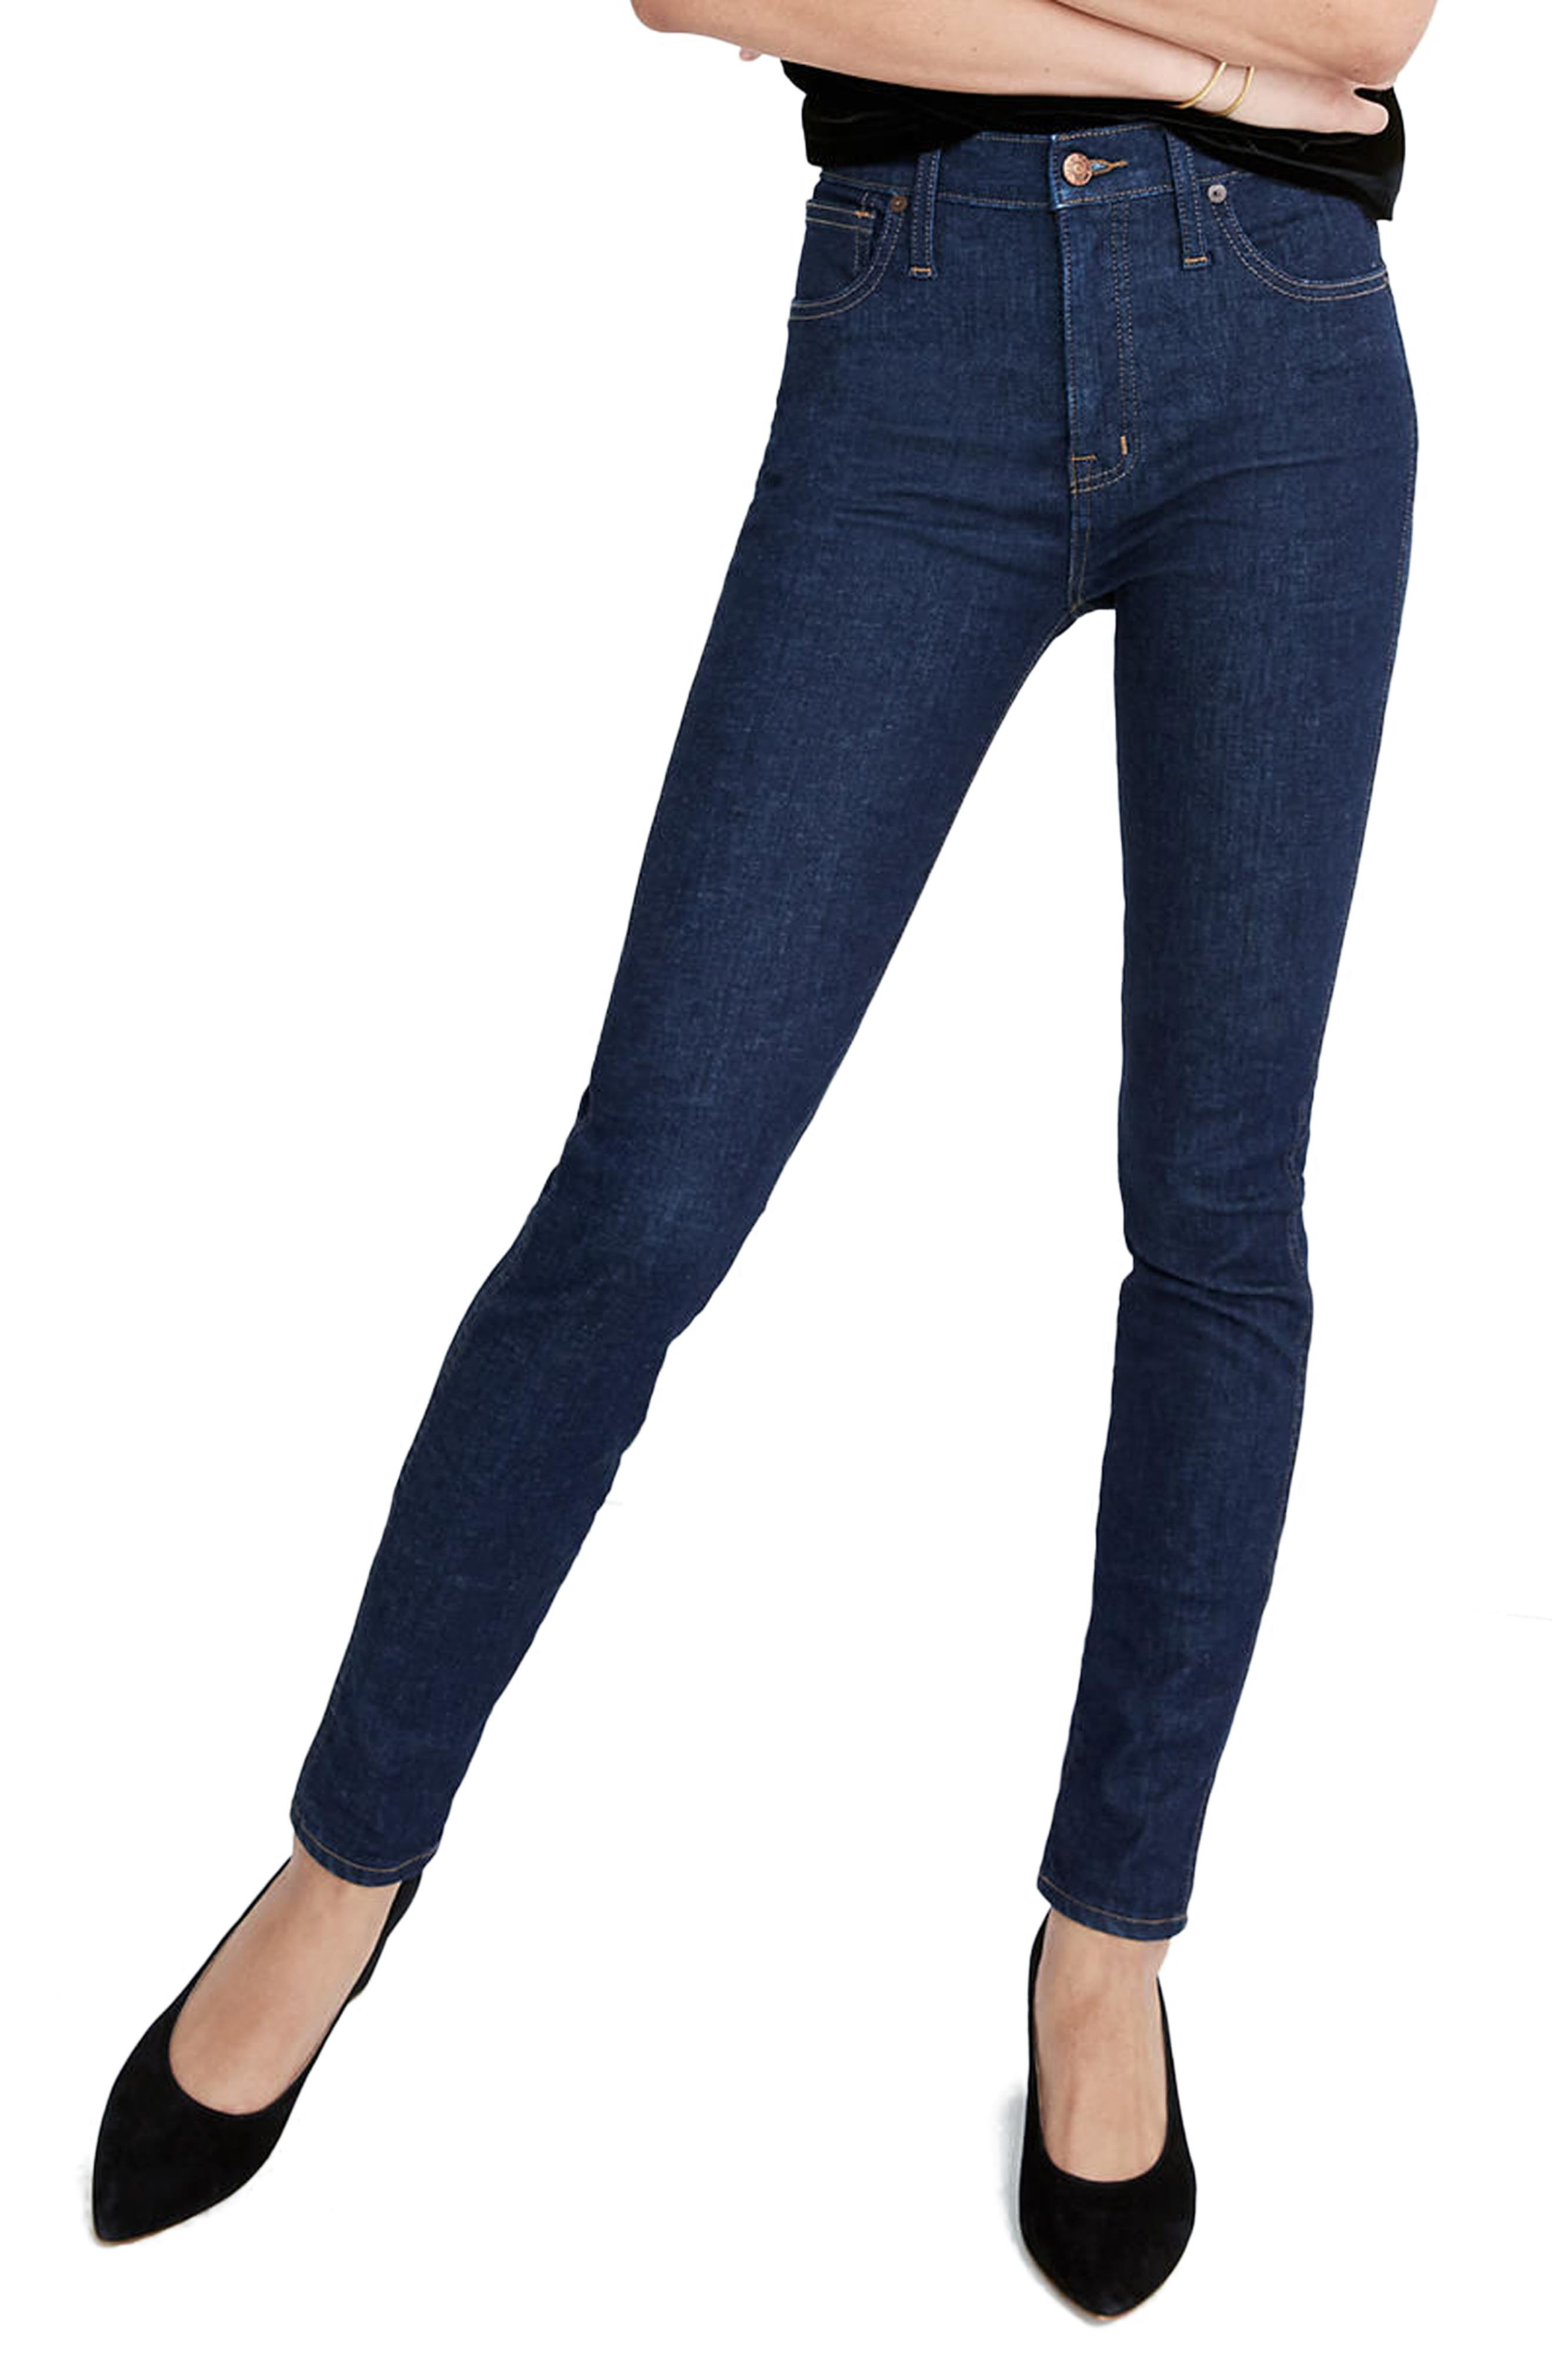 Main Image - Madewell 10-Inch High Waist Skinny Jeans (Lucille)